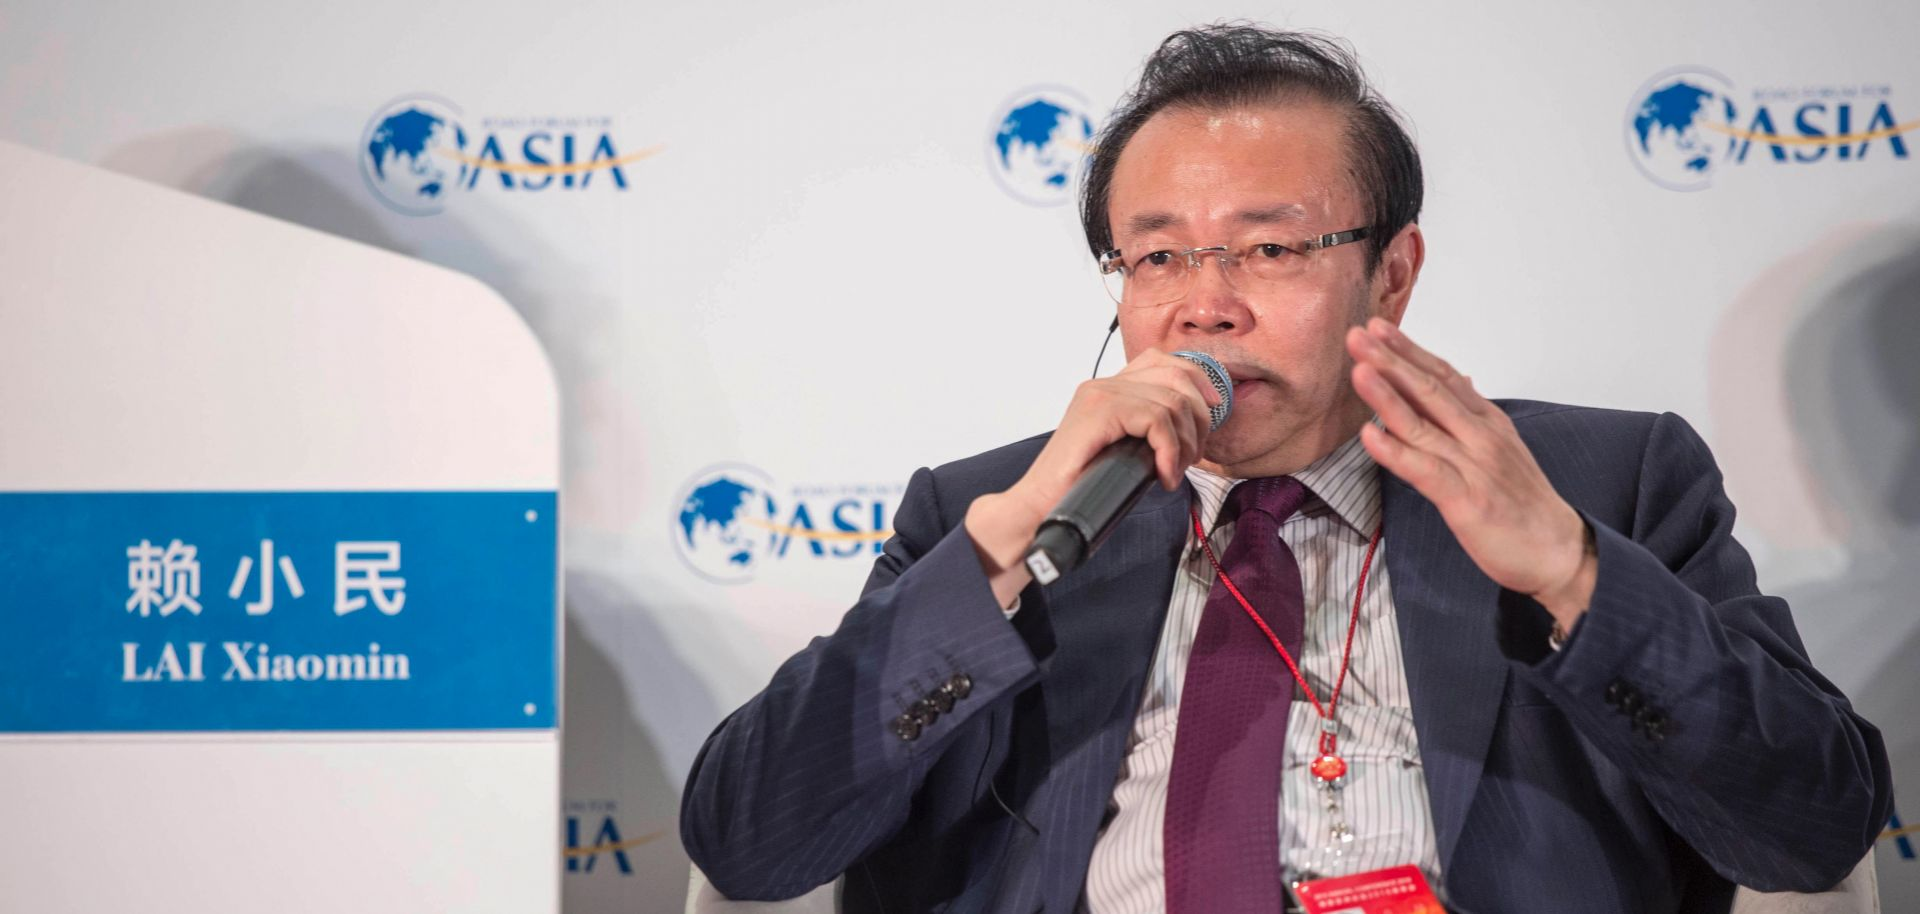 Lai Xiaomin, the then-chairman of China's Huarong Asset Management, speaks at the Boao Forum for Asia (BFA) Annual Conference in 2016.